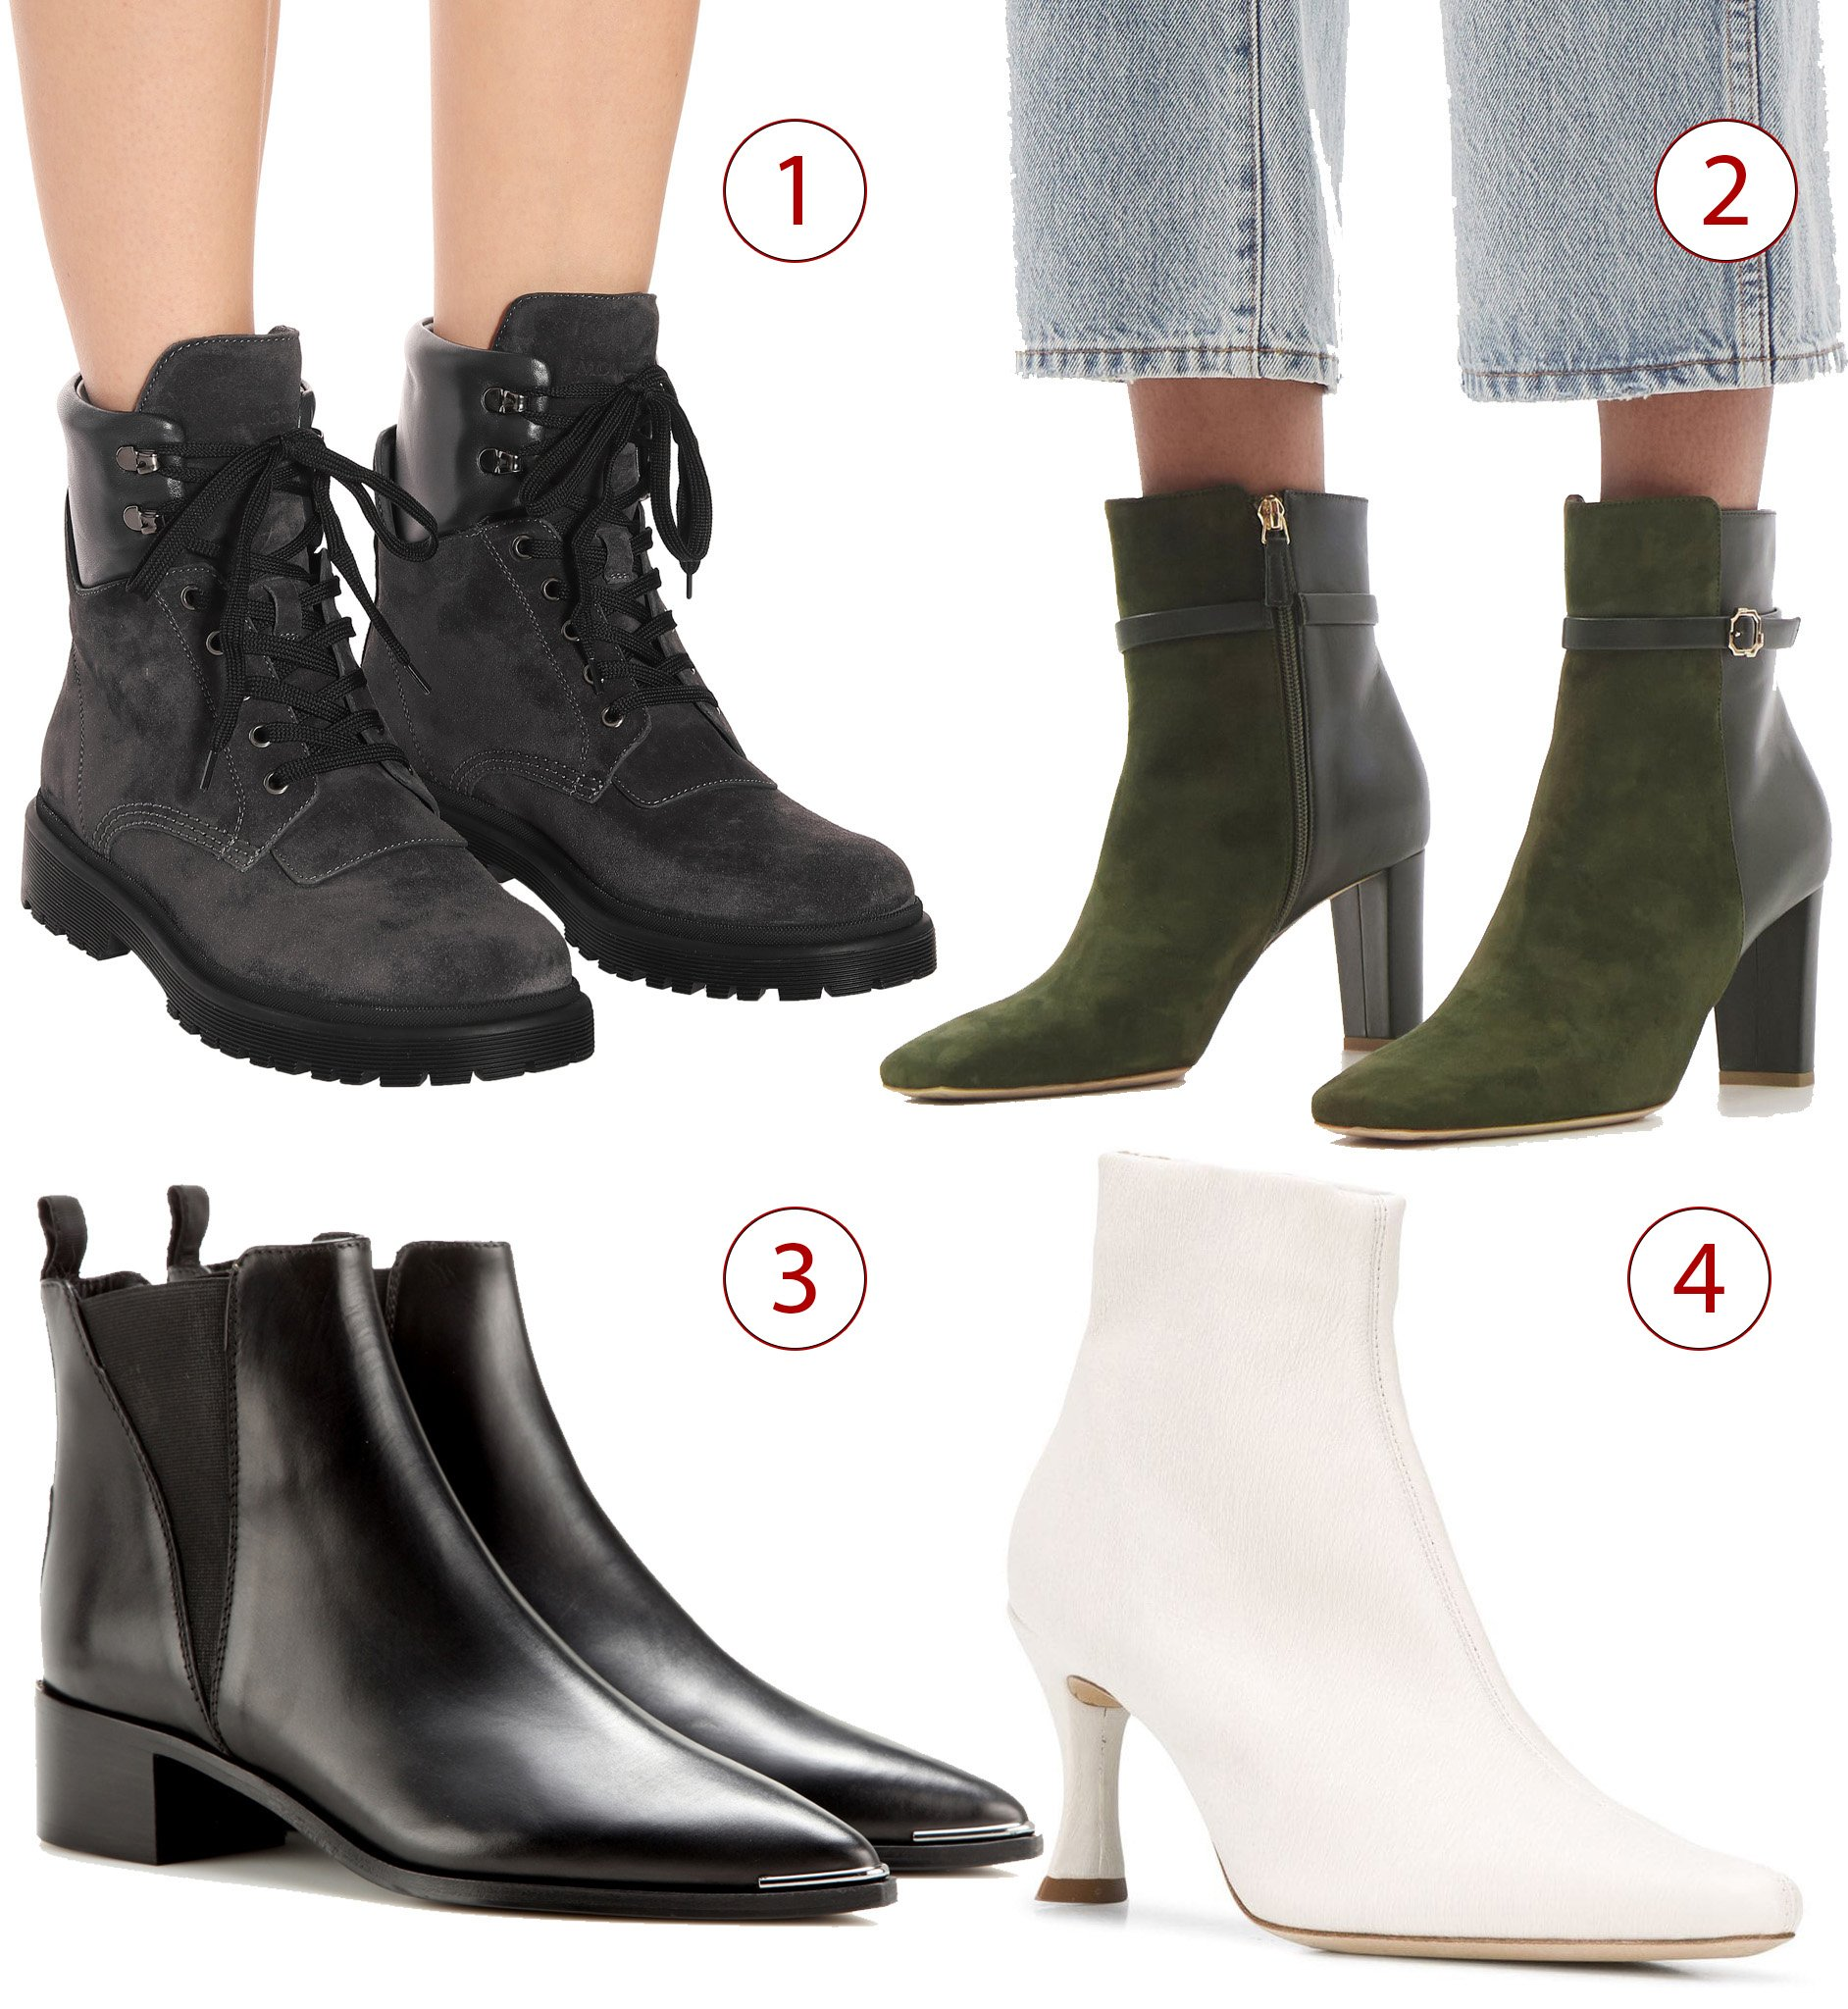 1. Moncler Patty suede ankle boots, 2. Malone Souliers Kris buckled suede and leather boots, 3. Acne Studios Jensen leather ankle boots, 4. By Far heeled ankle boots